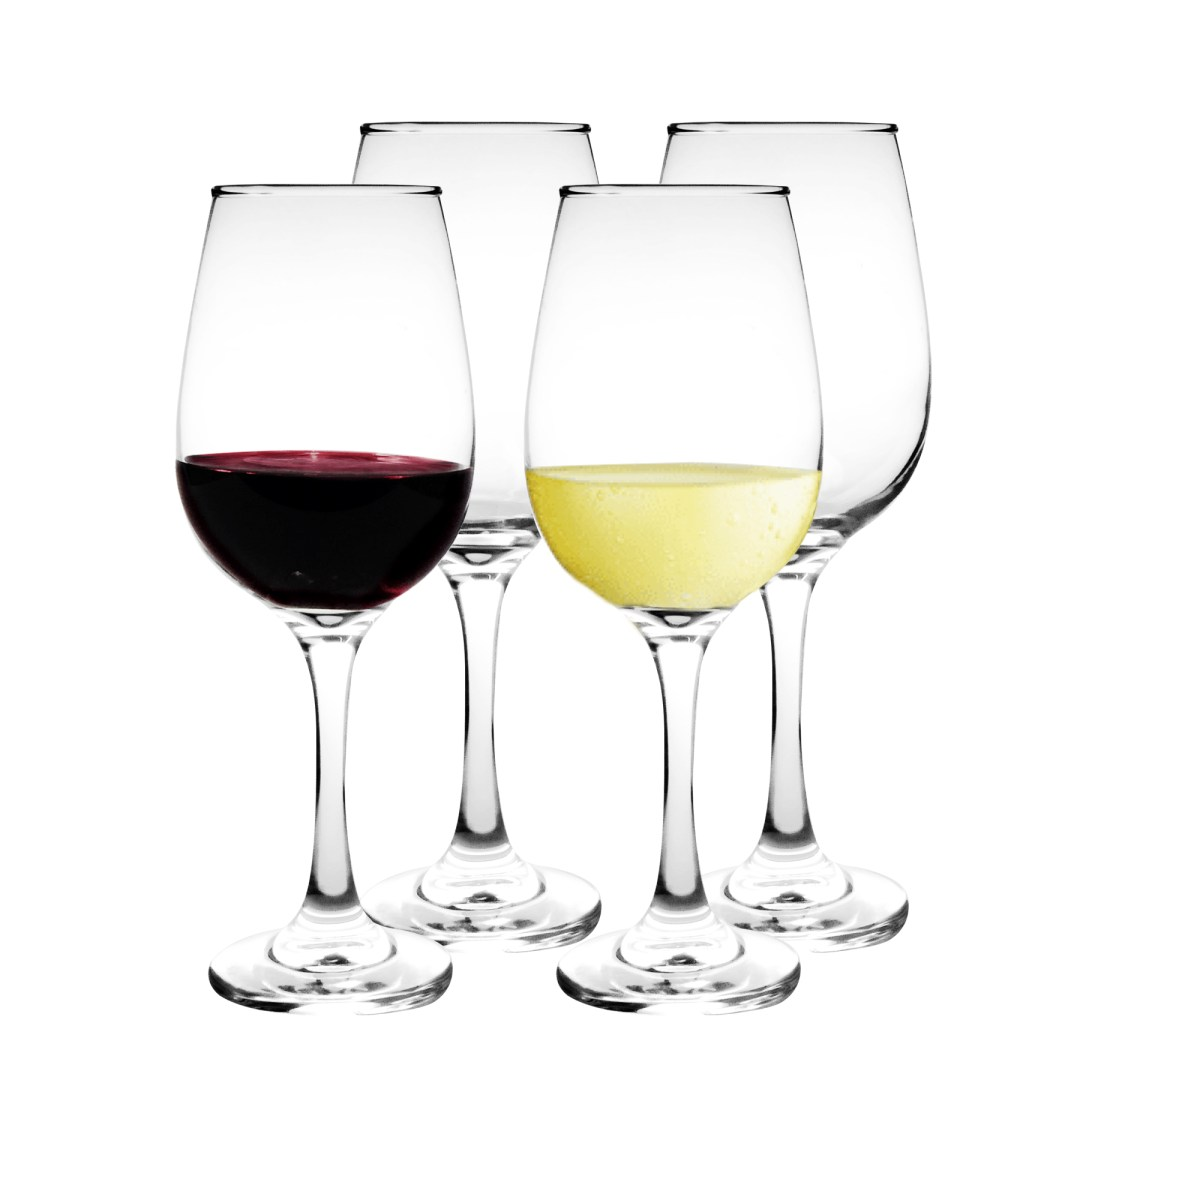 Set Copas Vino Vidrio 415ml (4u)